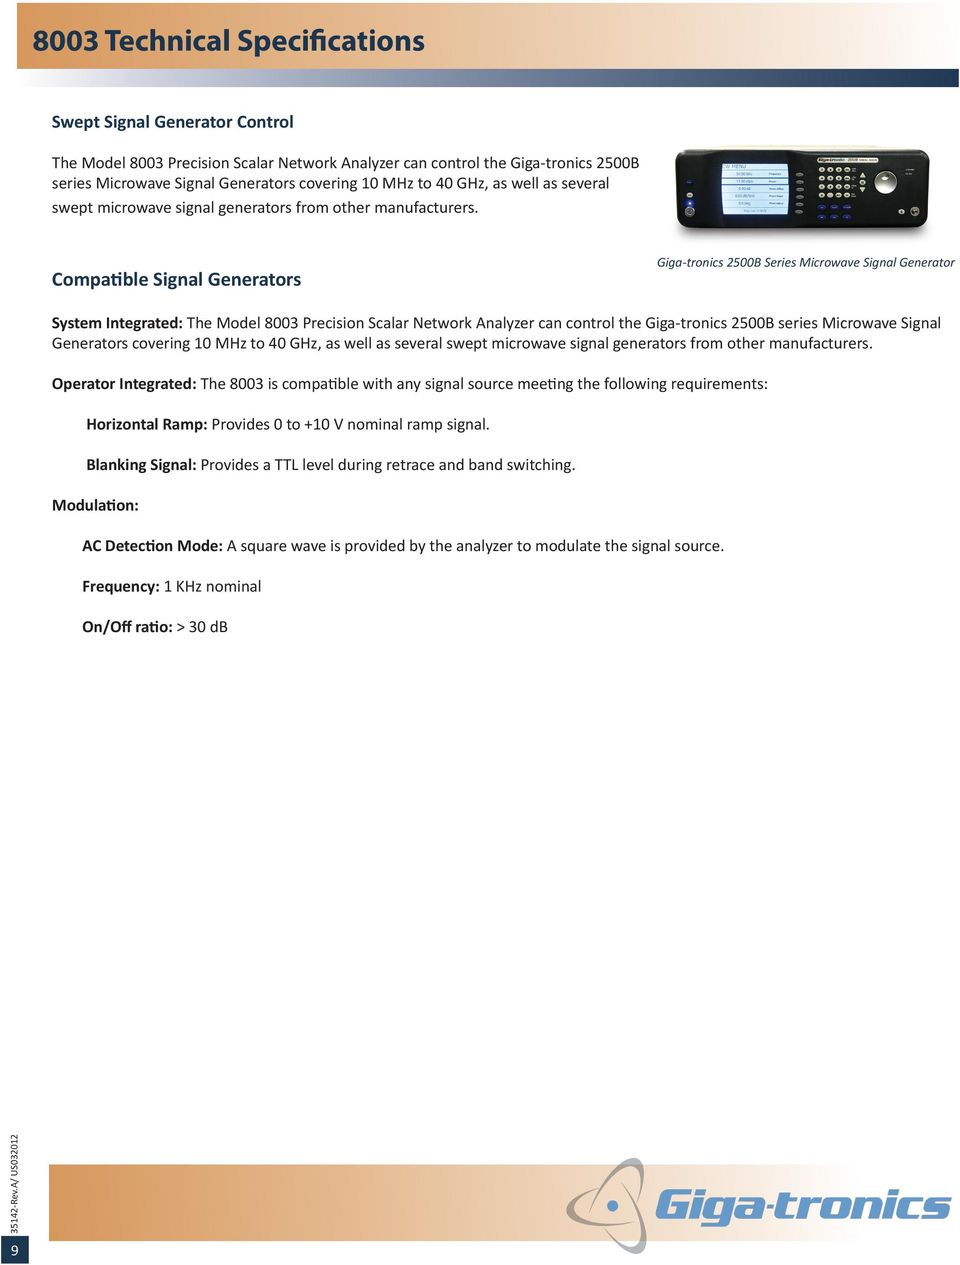 Compatible Signal Generators Giga-tronics 2500B Series Microwave Signal Generator System Integrated: The Model 8003 Precision Scalar Network Analyzer can control the Giga-tronics 2500B series